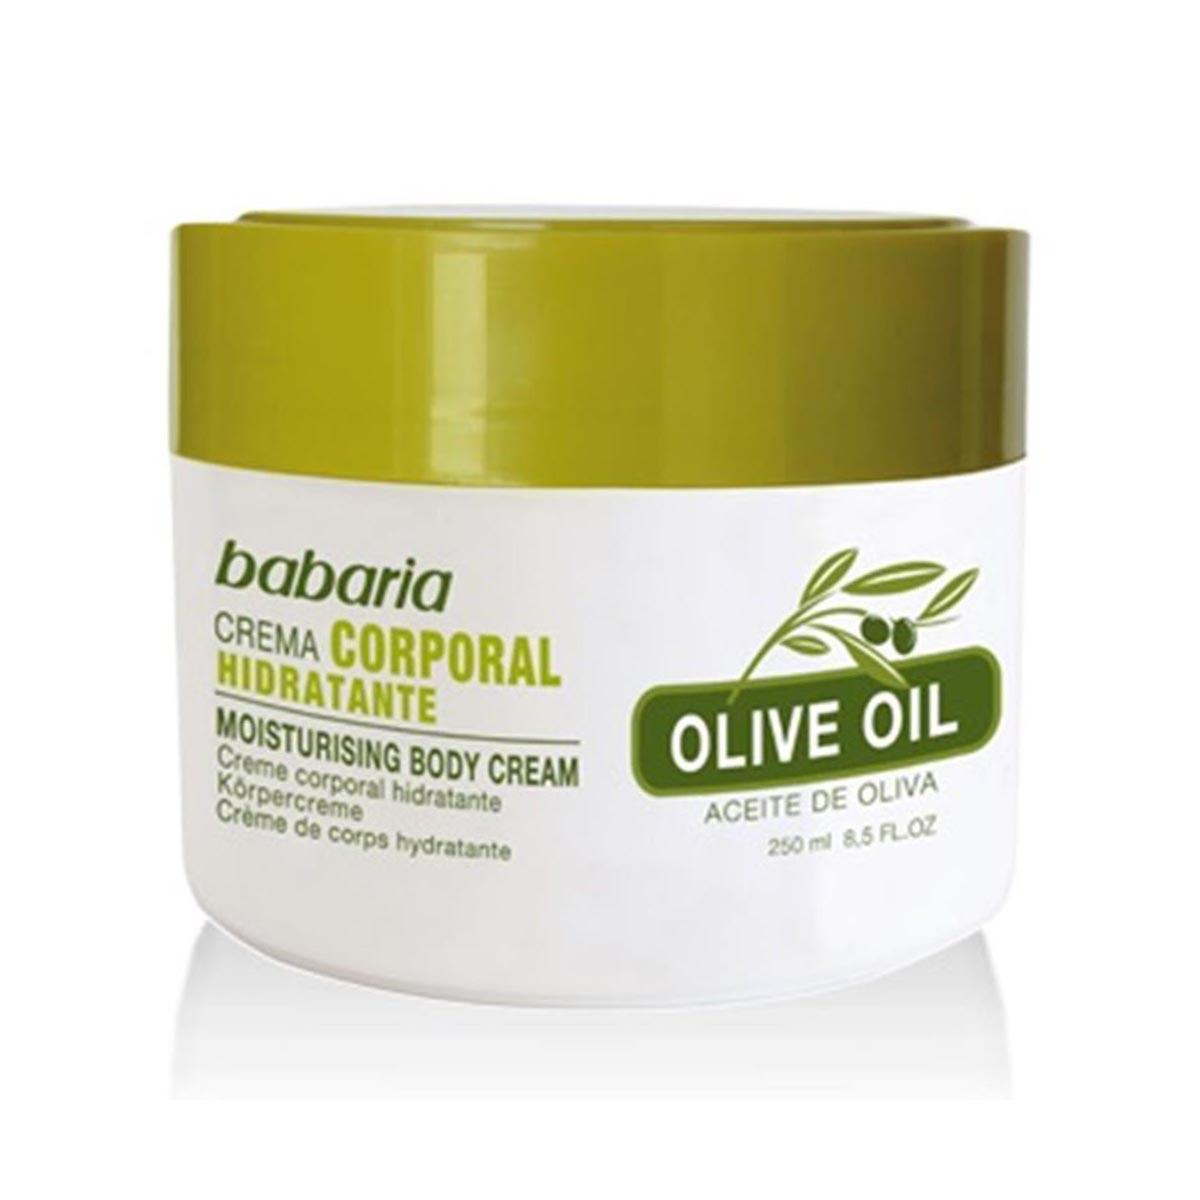 Babaria fragrances Olive Oil Body Cream 250ml